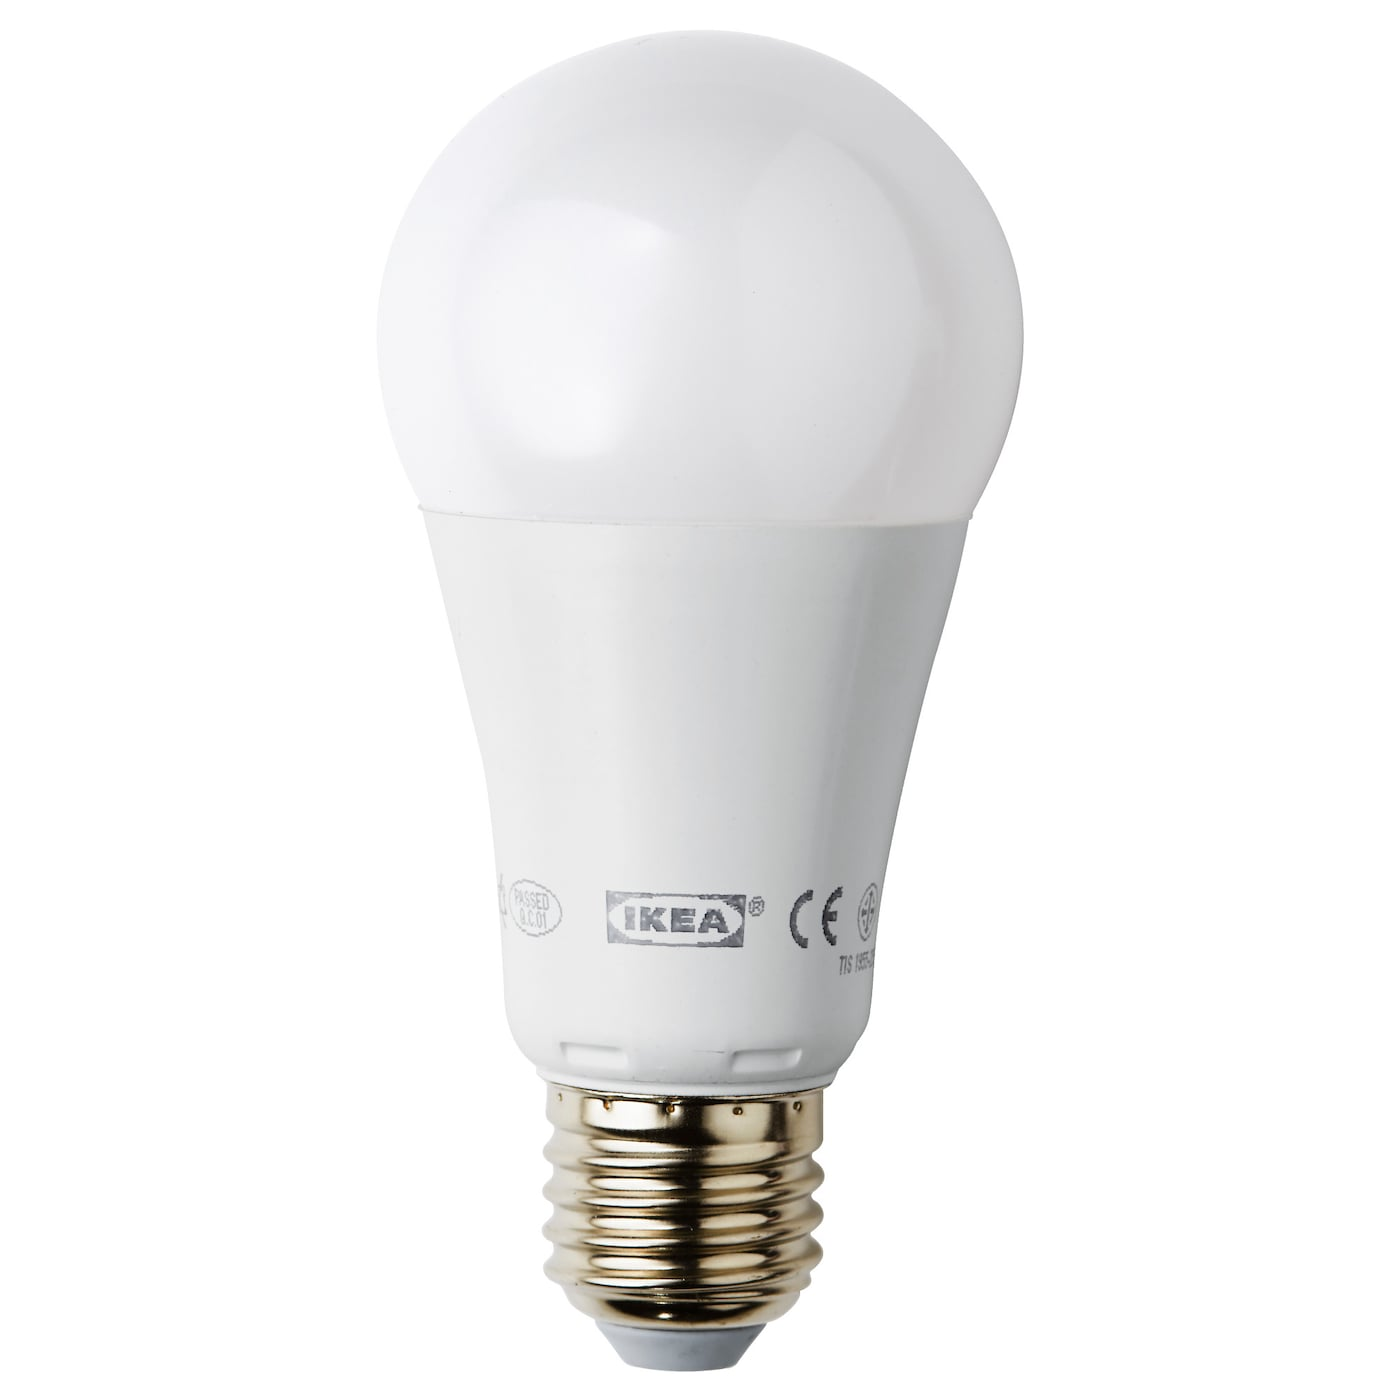 ledare led bulb e27 1000 lumen dimmable globe opal white ikea. Black Bedroom Furniture Sets. Home Design Ideas